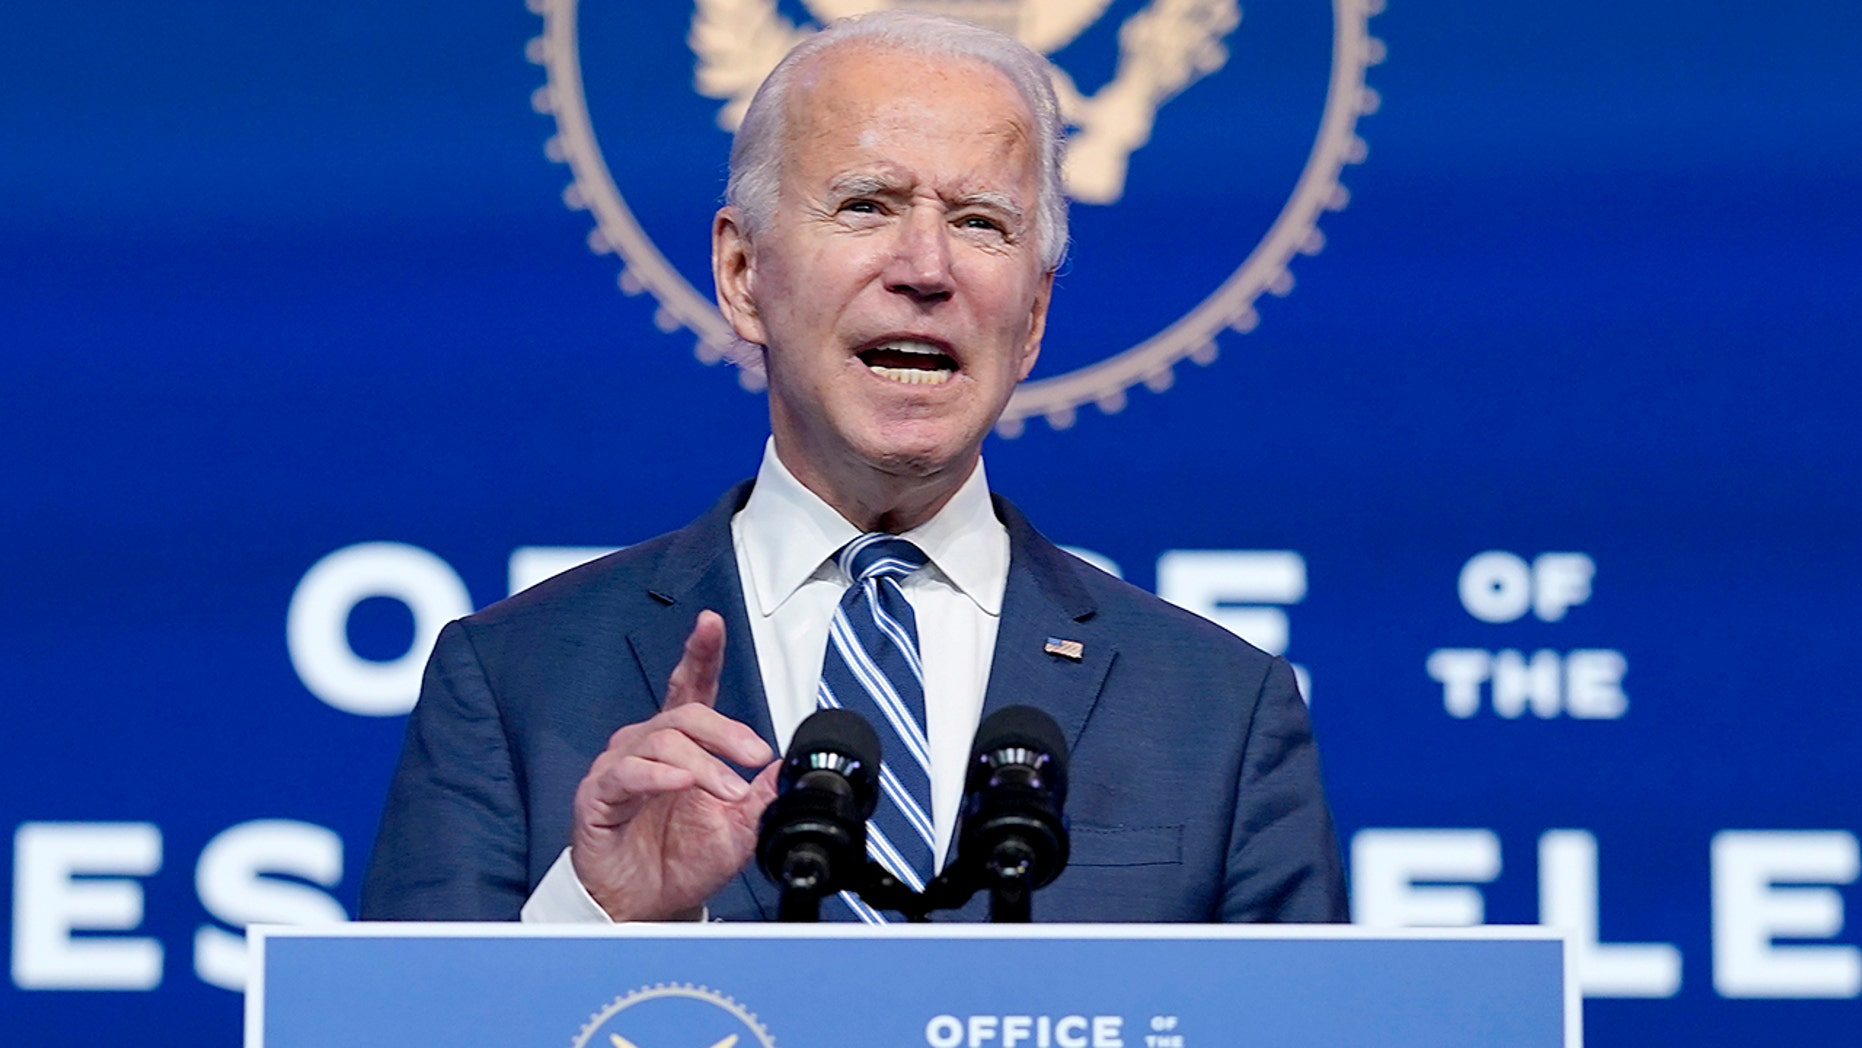 Biden transition 'moving forward,' awaiting GSA confirmation of election results